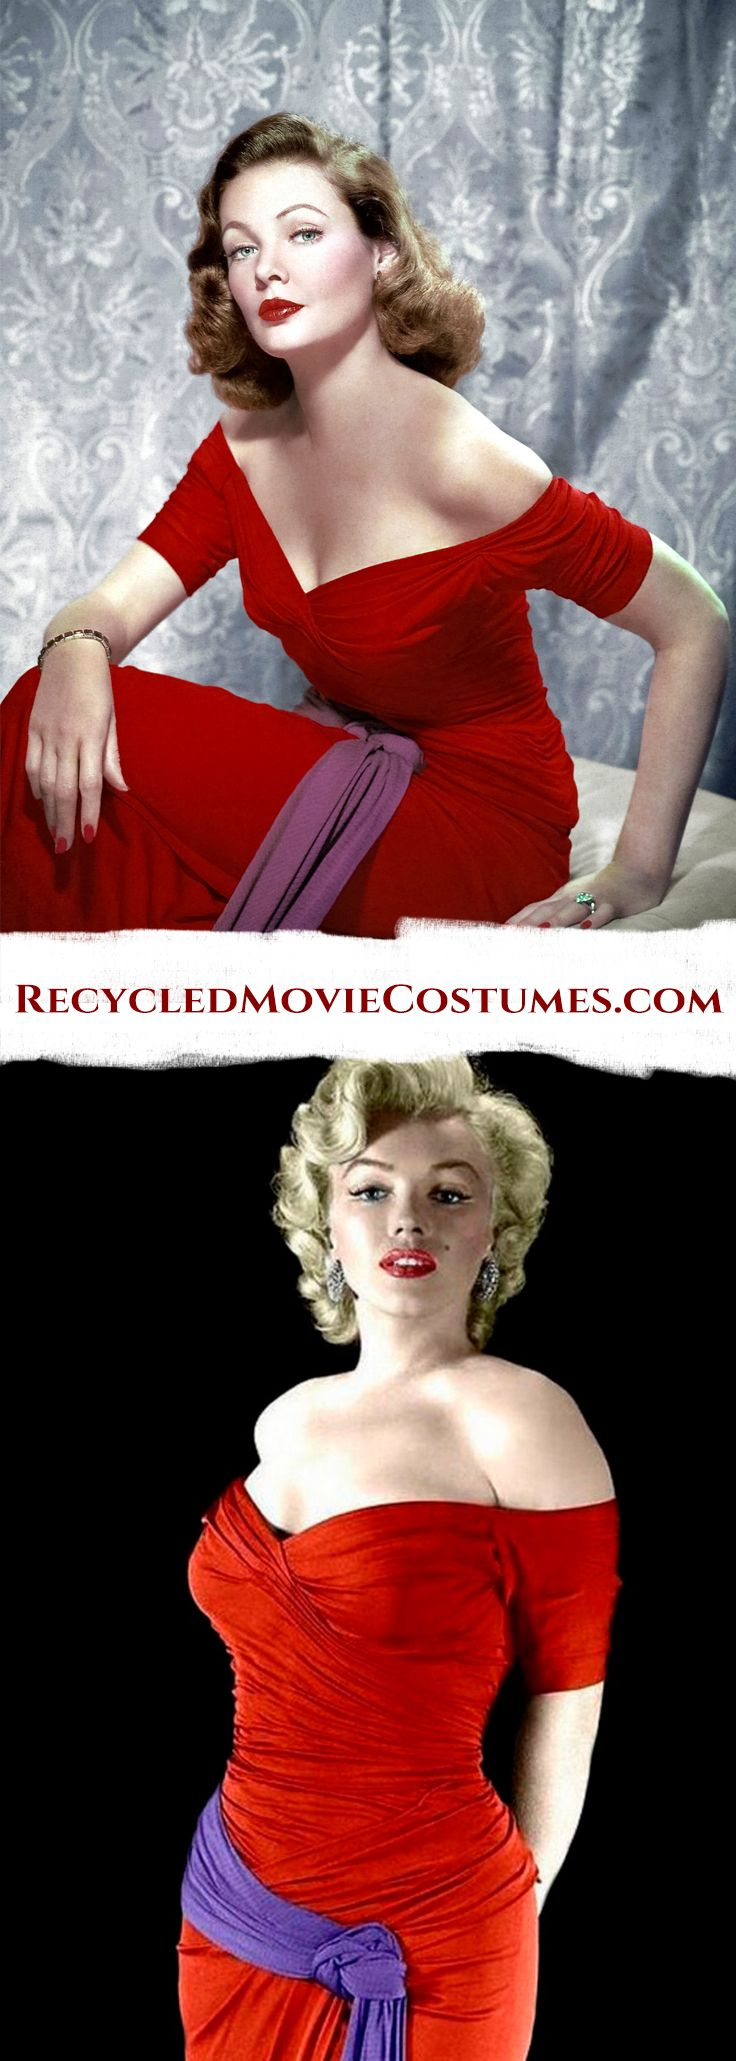 This beautiful red gown was worn by both Gene Tierney and Marilyn Monroe. Check out hundreds of other Recycled Costumes at Recycledmoviecostumes.com  #GeneTierney #OnTheRiviera #MarilynMonroe #MonkeyBusiness #OlegCassini #Hollywood #RecycledMovieCostumes #RecycledCostumes #ReusedCostumes